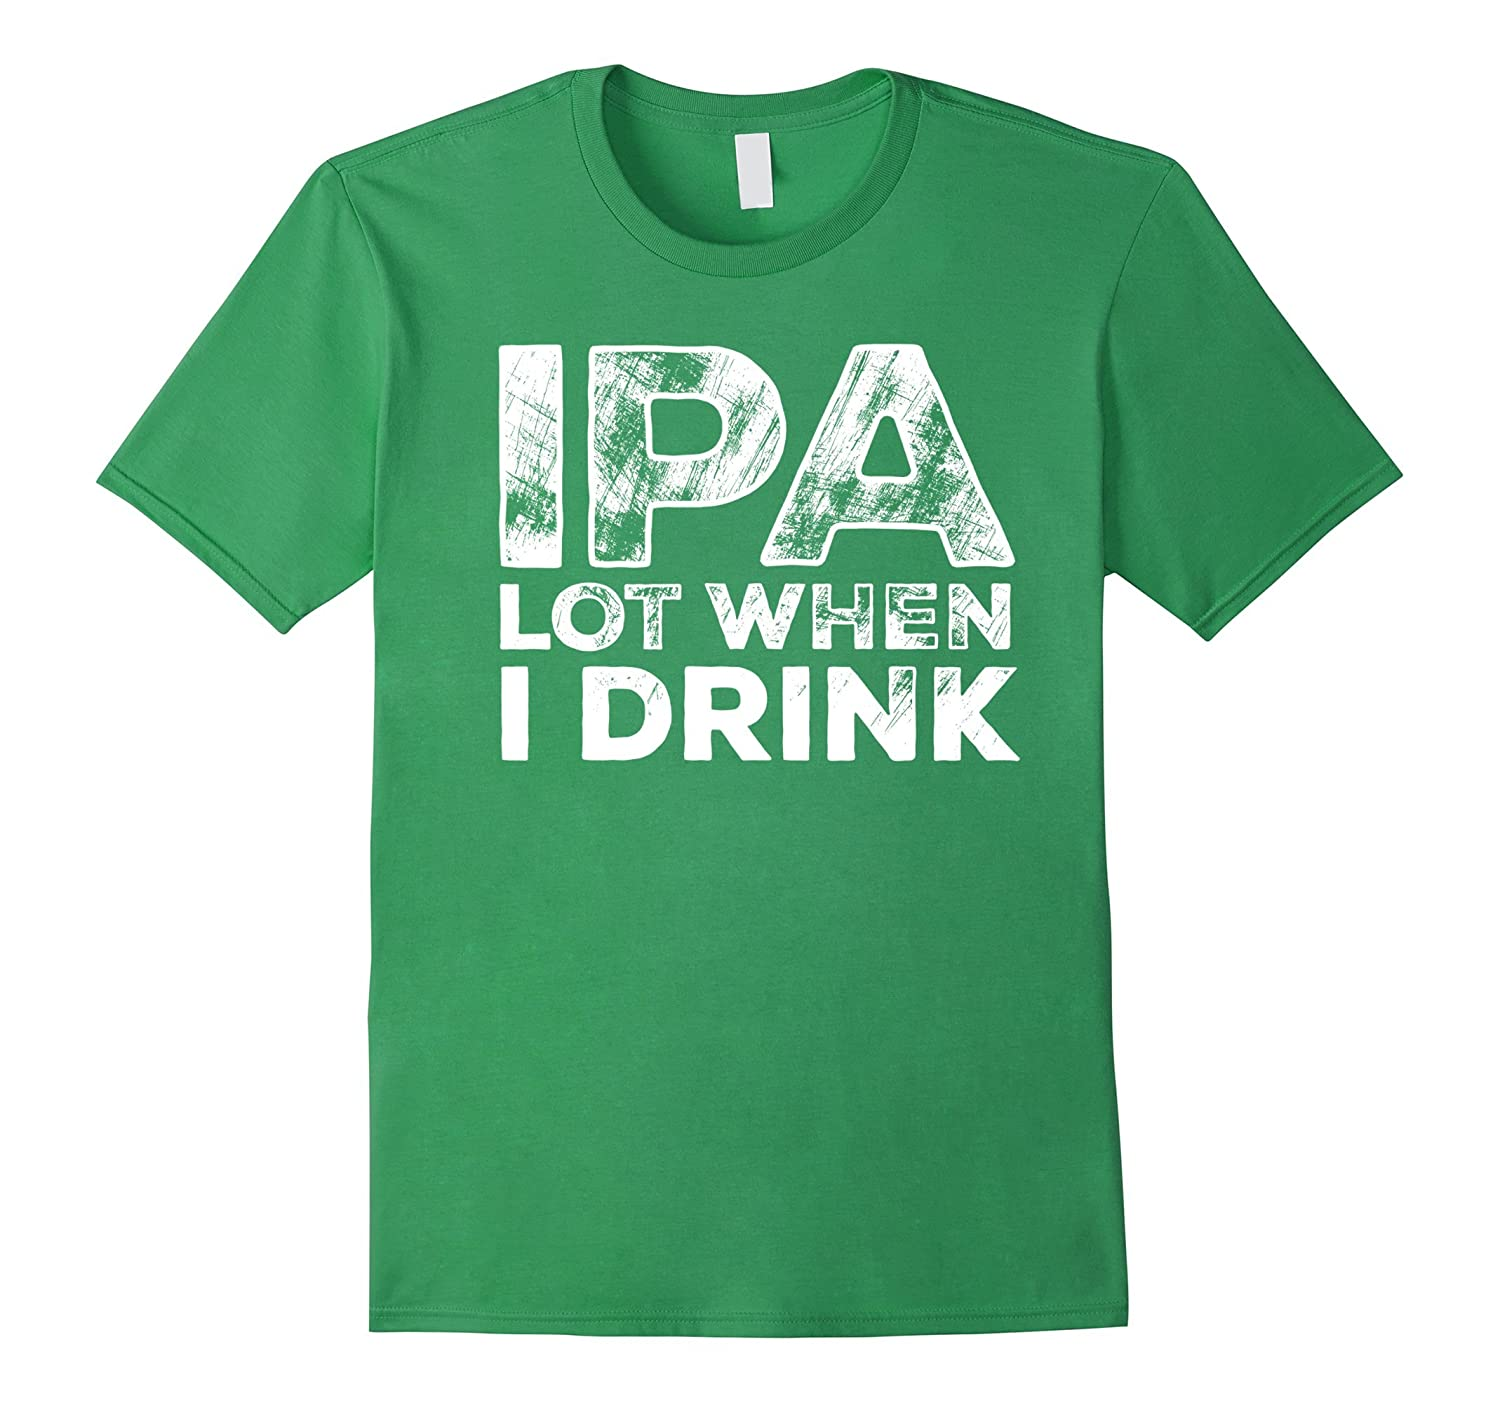 Ipa lot when i drink funny craft beer drinking party t for Funny craft beer shirts